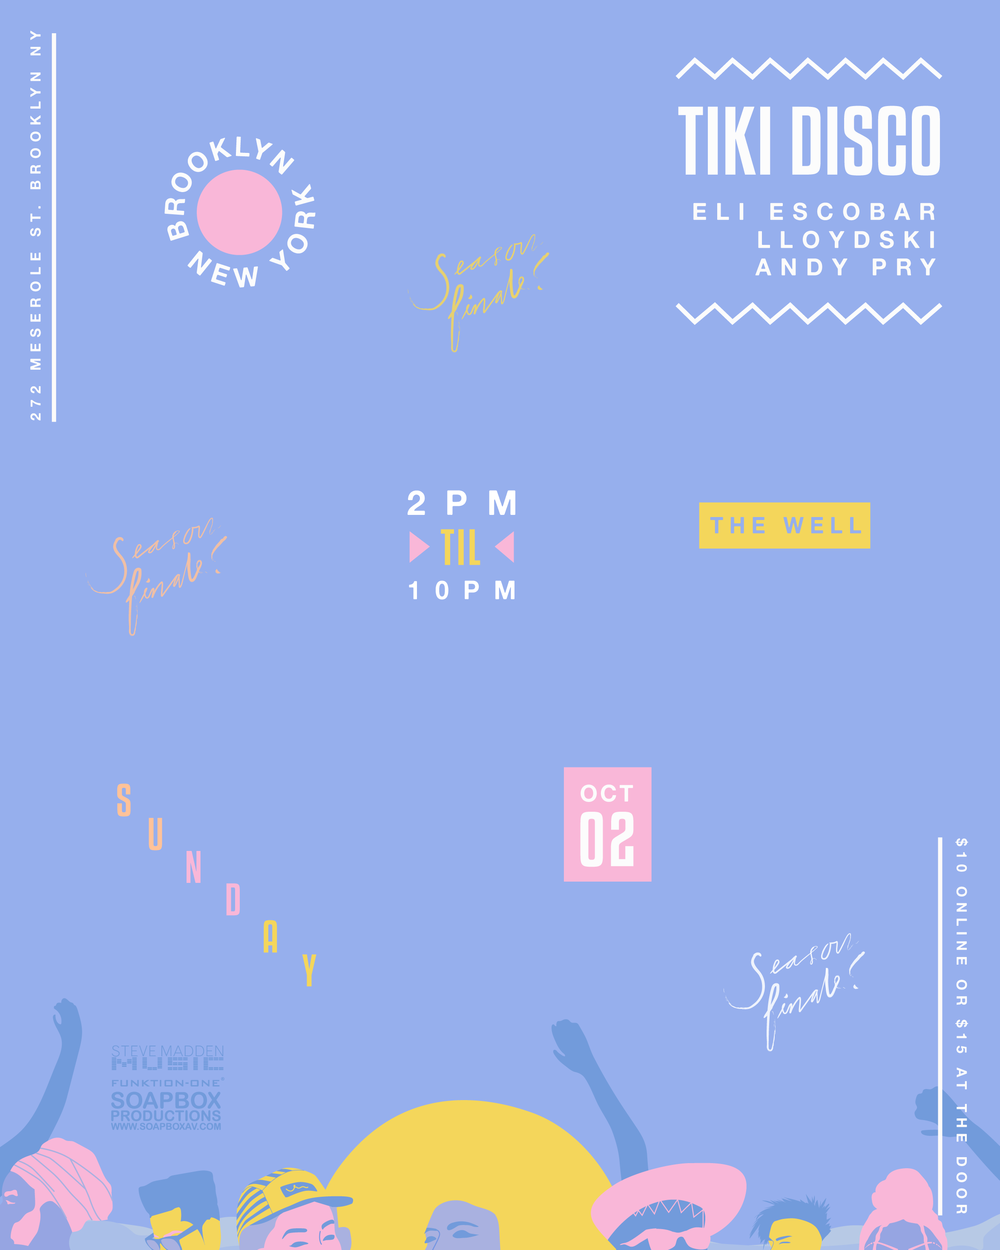 2016-09-22_tikidisco_poster_01.png